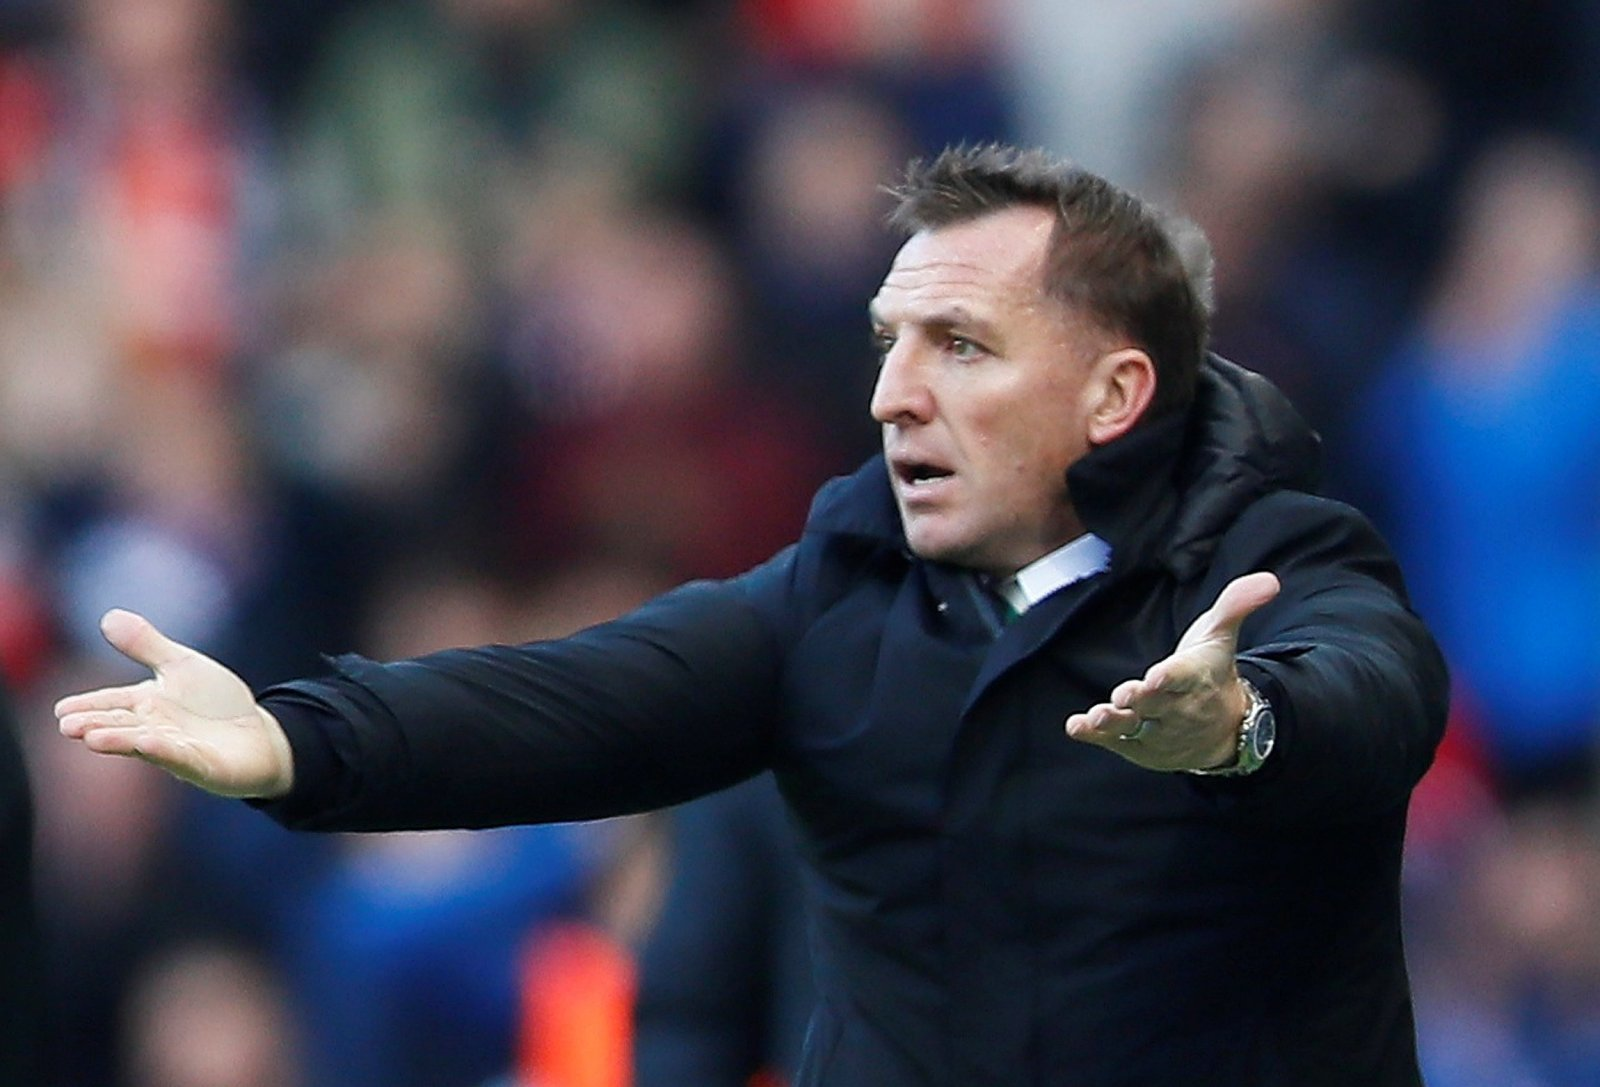 Leicester City want Brendan Rodgers